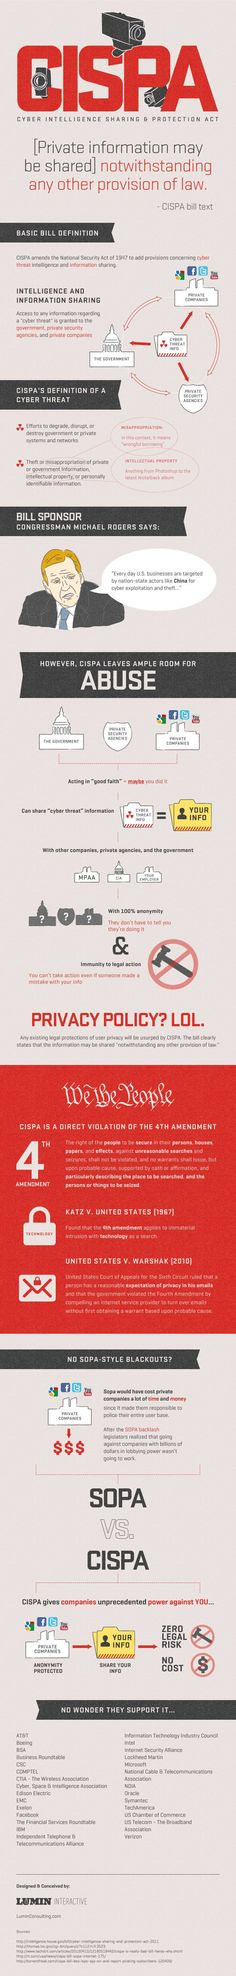 What is CISPA?  Infographic, Internet Privacy Laws, how it affects you, photoshopping is a crime, warrant-less search and seizure on data, violation of 4th ammendment, why are private companies and corporations involved in this?, they will be immune to legal action with your personal information